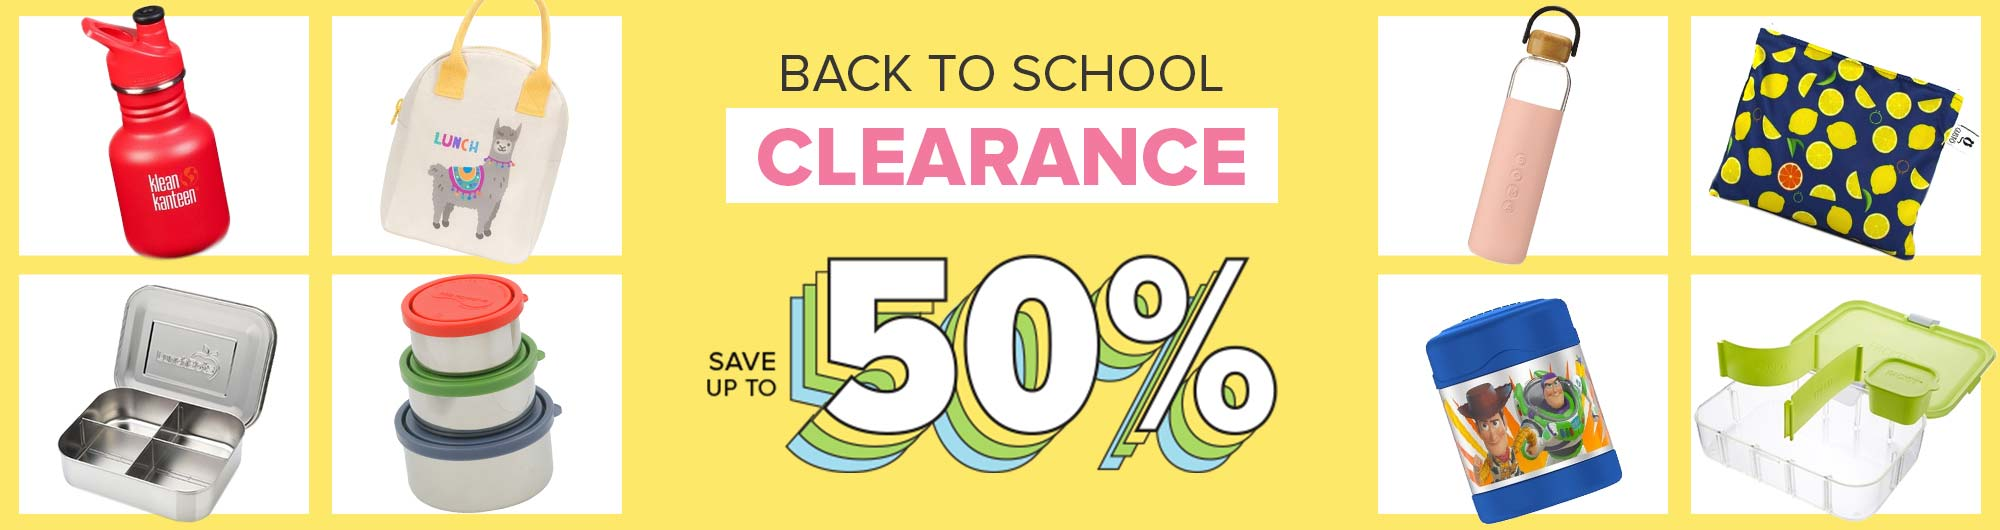 Save up to 50% off Back to School Clearance